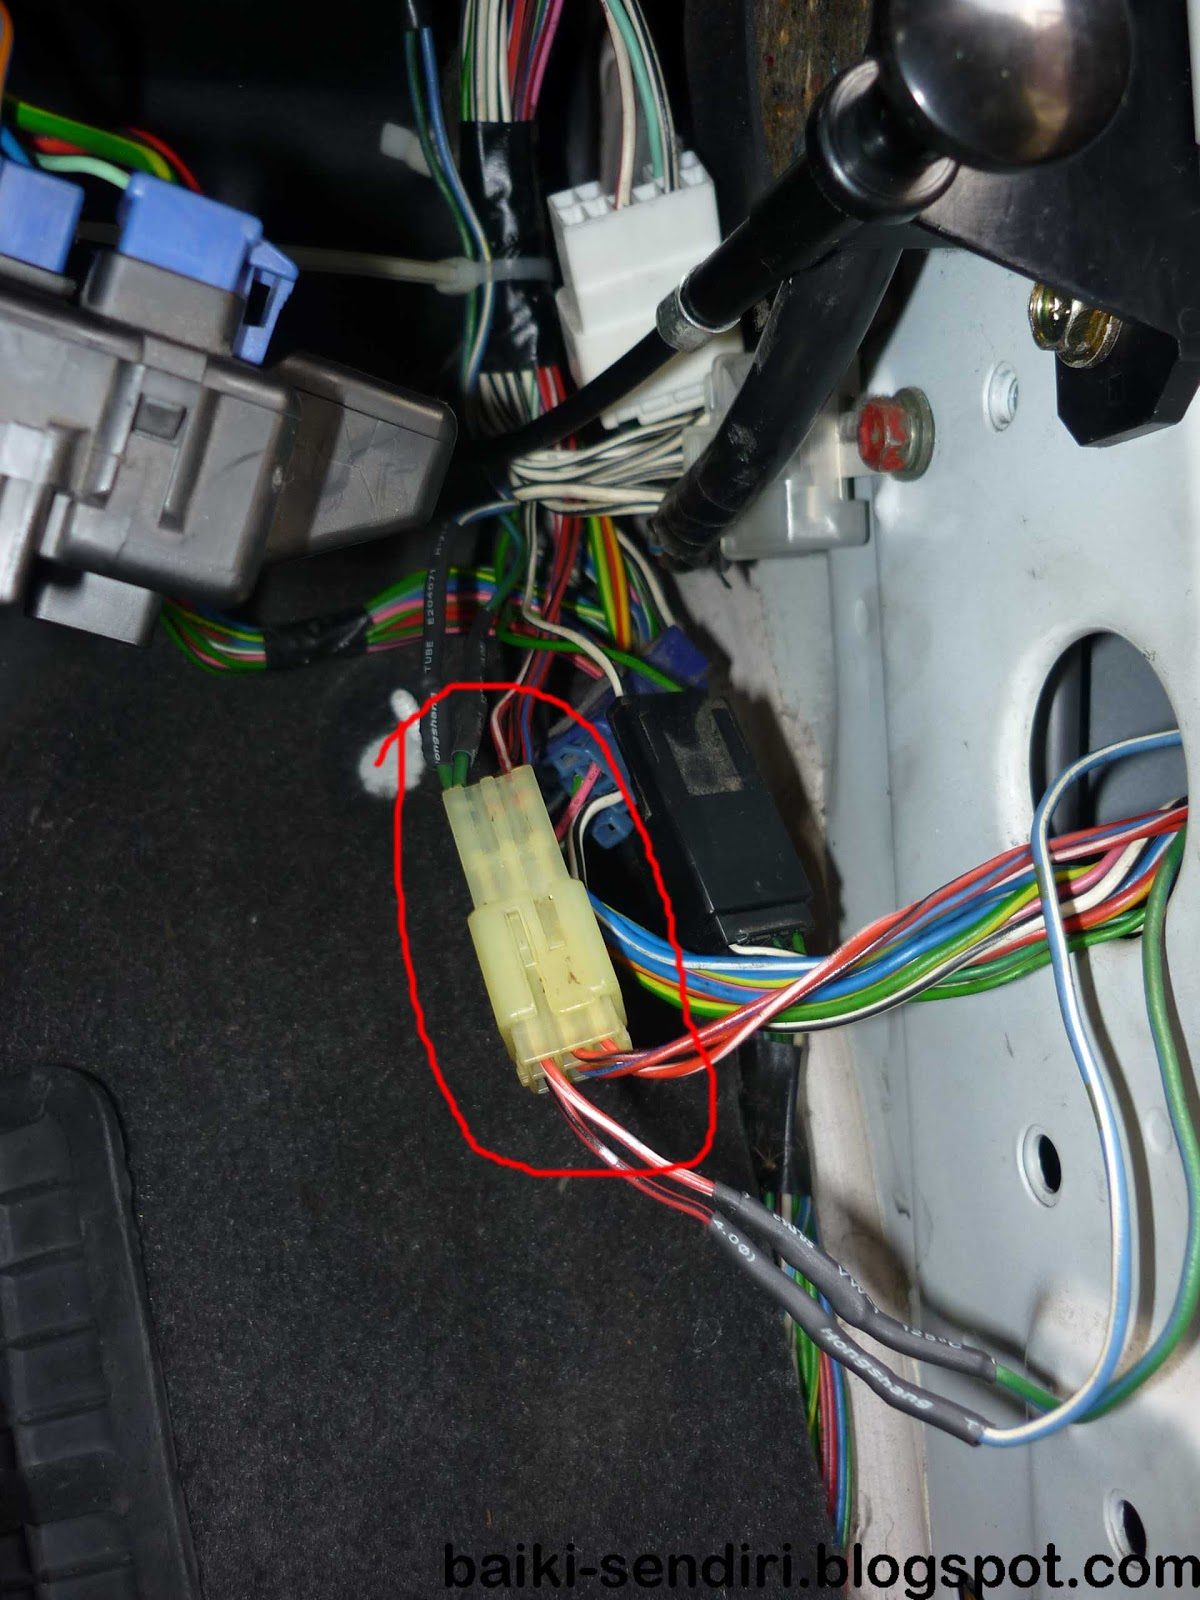 wiring kelisa wiring image wiring diagram diy fix on your own daihatsu l7 perodua kelisa autoflip on wiring kelisa